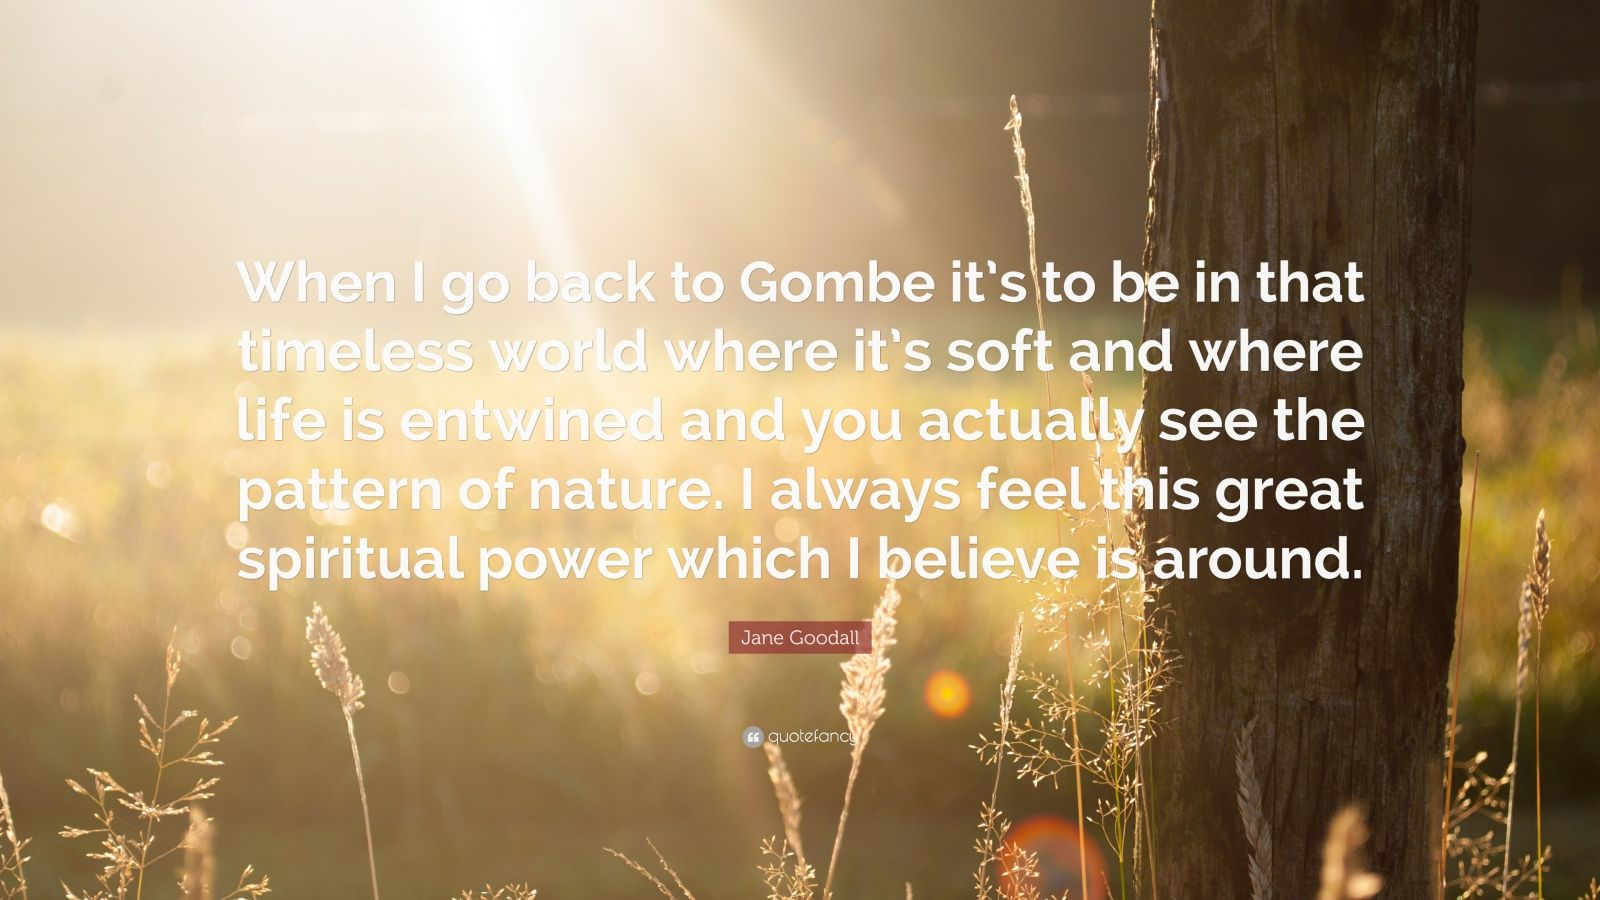 "Jane Goodall Quote: ""When I go back to Gombe it's to be in that timeless world where it's soft and where life is entwined and you actually see the pattern of nature. I always feel this great spiritual power which I believe is around."""